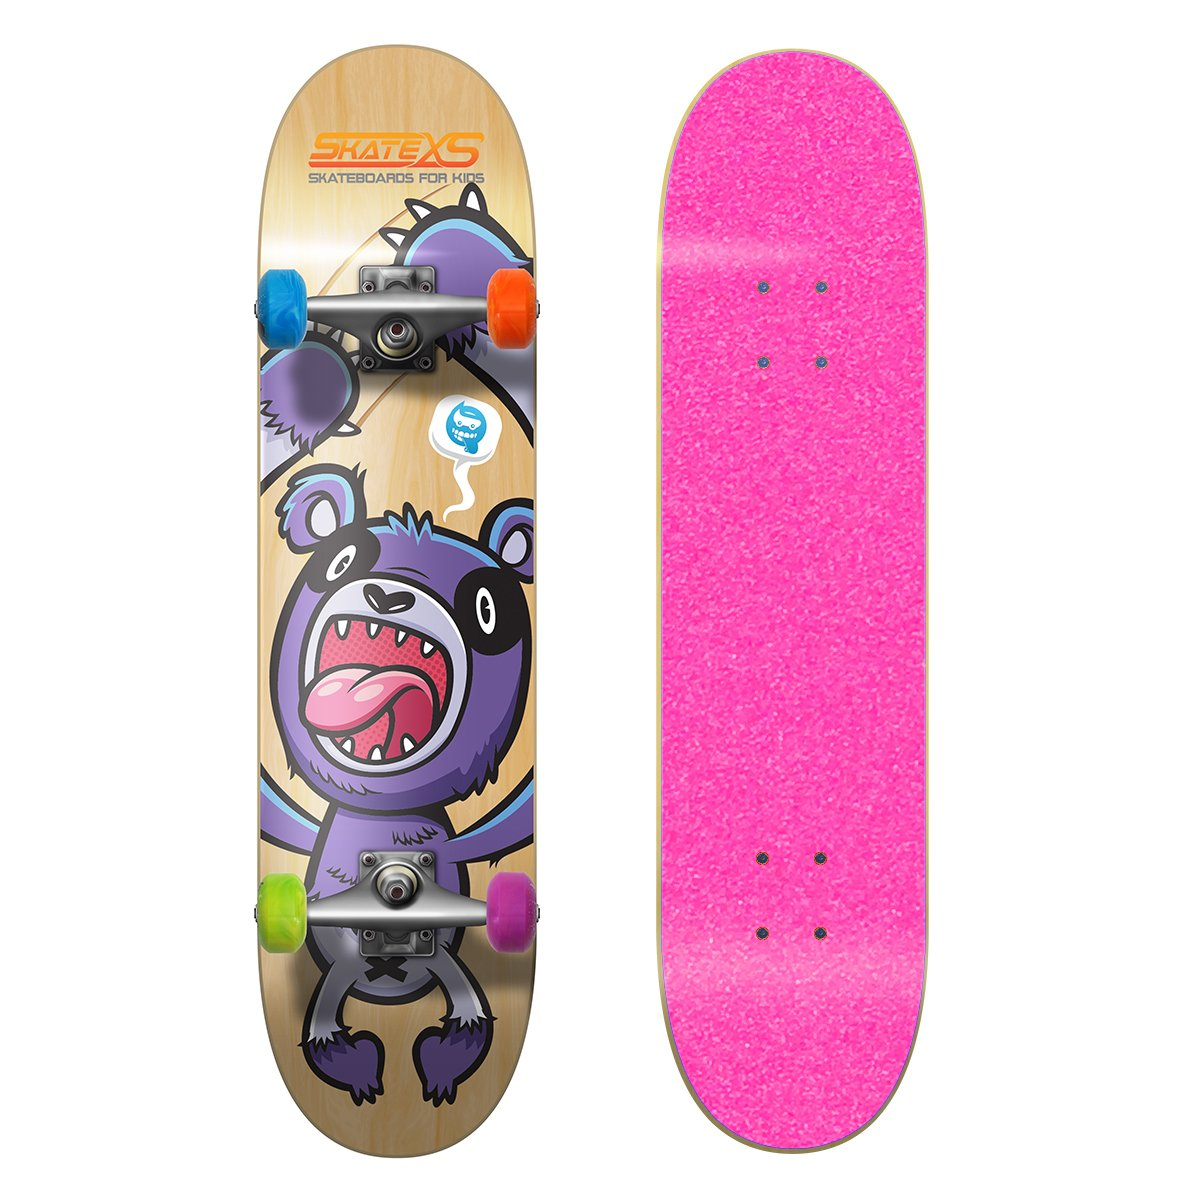 美品  SkateXS 初心者 Wheels パンダ ストリート 初心者 キッズ スケートボード B00YG1VV6G 7.4 x Pink 30 (Ages 11-12)|Pink Grip Tape/ Multi-Color Wheels Pink Grip Tape/ Multi-Color Wheels 7.4 x 30 (Ages 11-12), 【限定価格セール!】:af924275 --- a0267596.xsph.ru